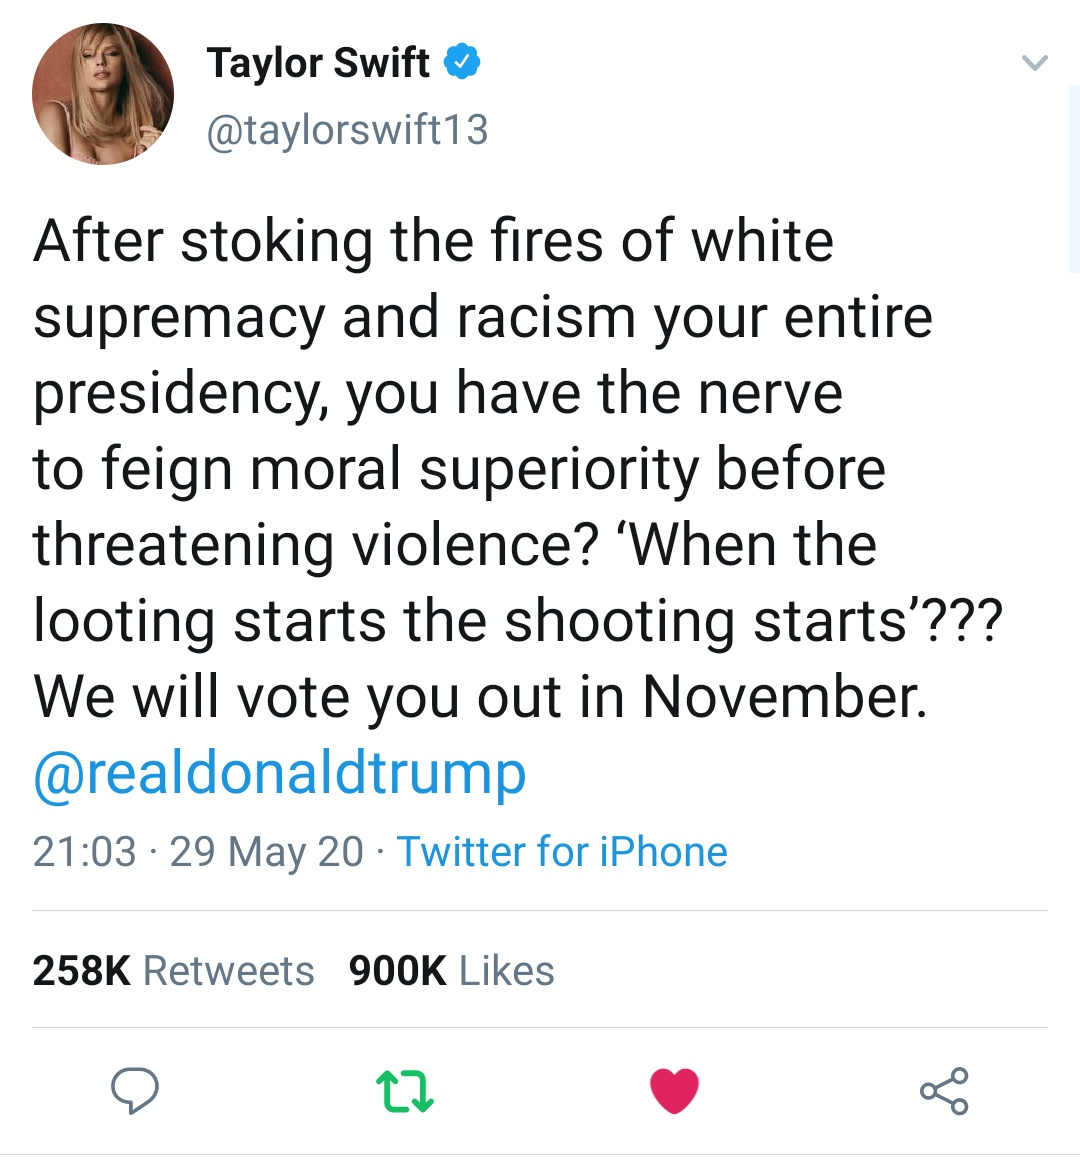 Taylor Swift India On Twitter Taylor Swift S Recent Tweet On Donald Trump Has Surpassed More Than 900k Likes In Less Than 5 Hours Blacklivesmatter Https T Co 1zdftykcj0 Taylor swift's twitter and instagram accounts hacked. taylor swift india on twitter taylor